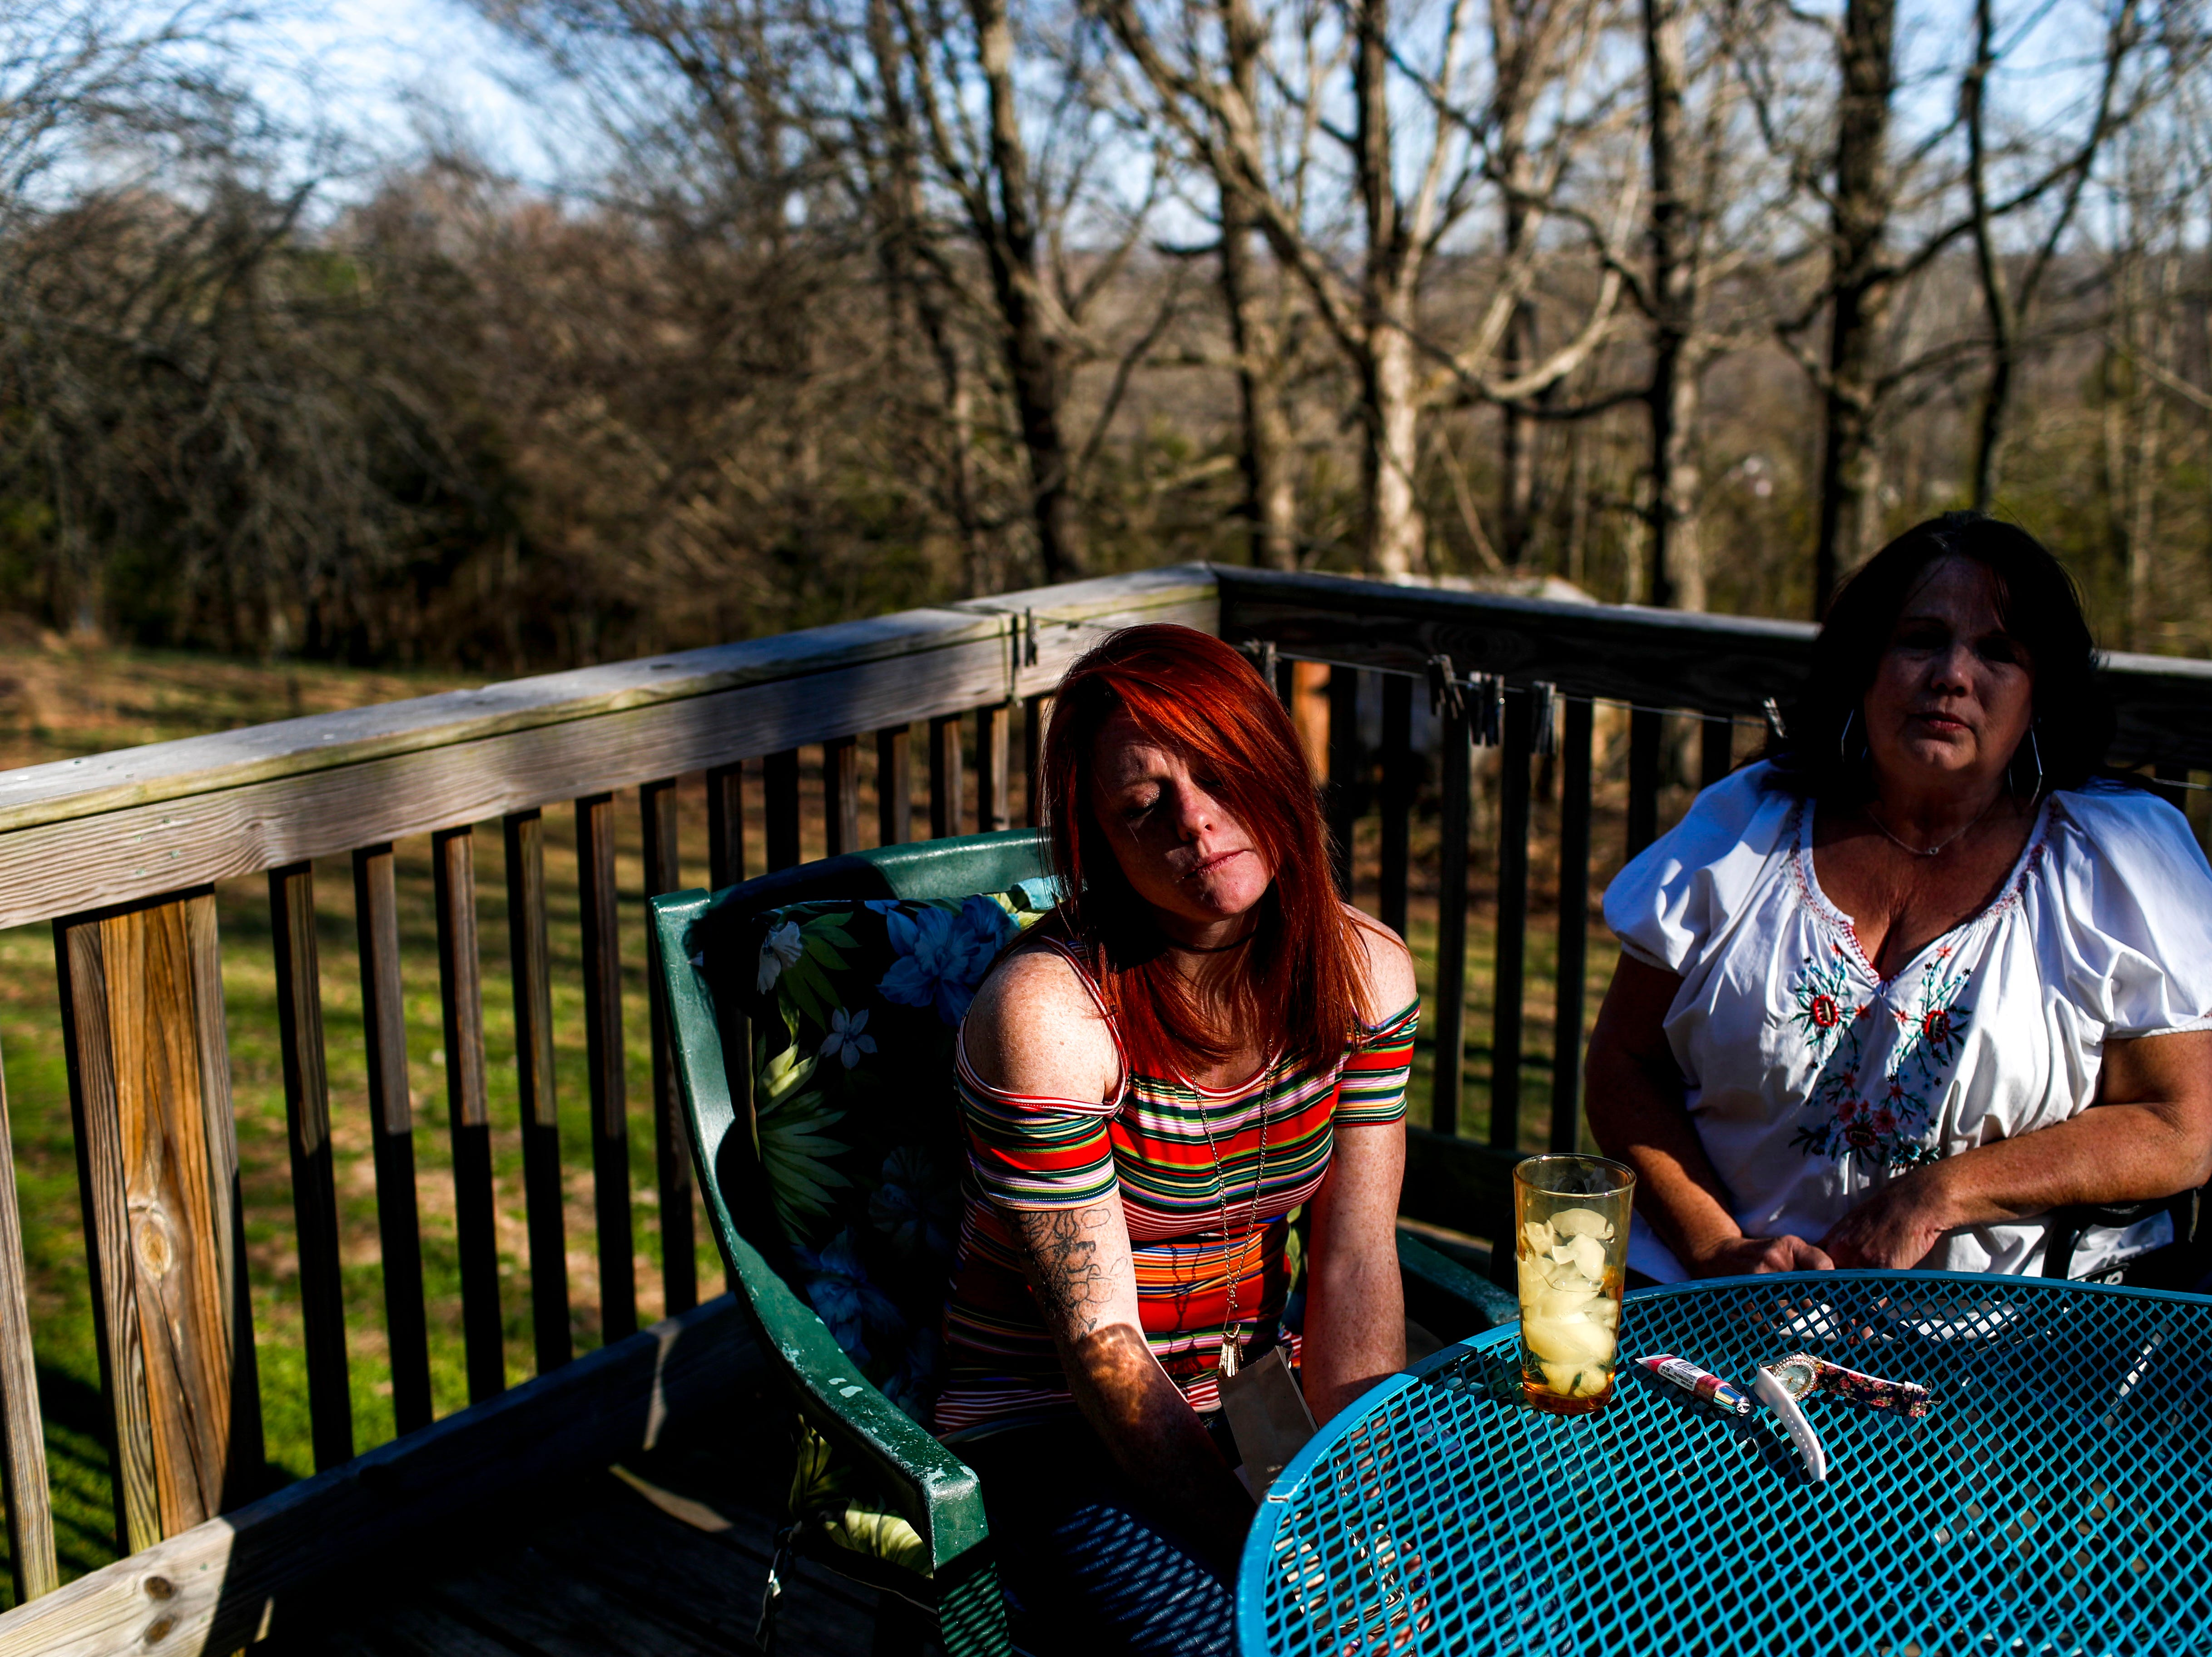 Lacie Sloan, left, and Colleen Lindsay, right, sink into their chairs on the back porch while speaking to The Leaf-Chronicle about Sloan's daughter Natalie Lyle, who took her own life, at the Lindsay residence in Clarksville, Tenn., on Friday, March 22, 2019.